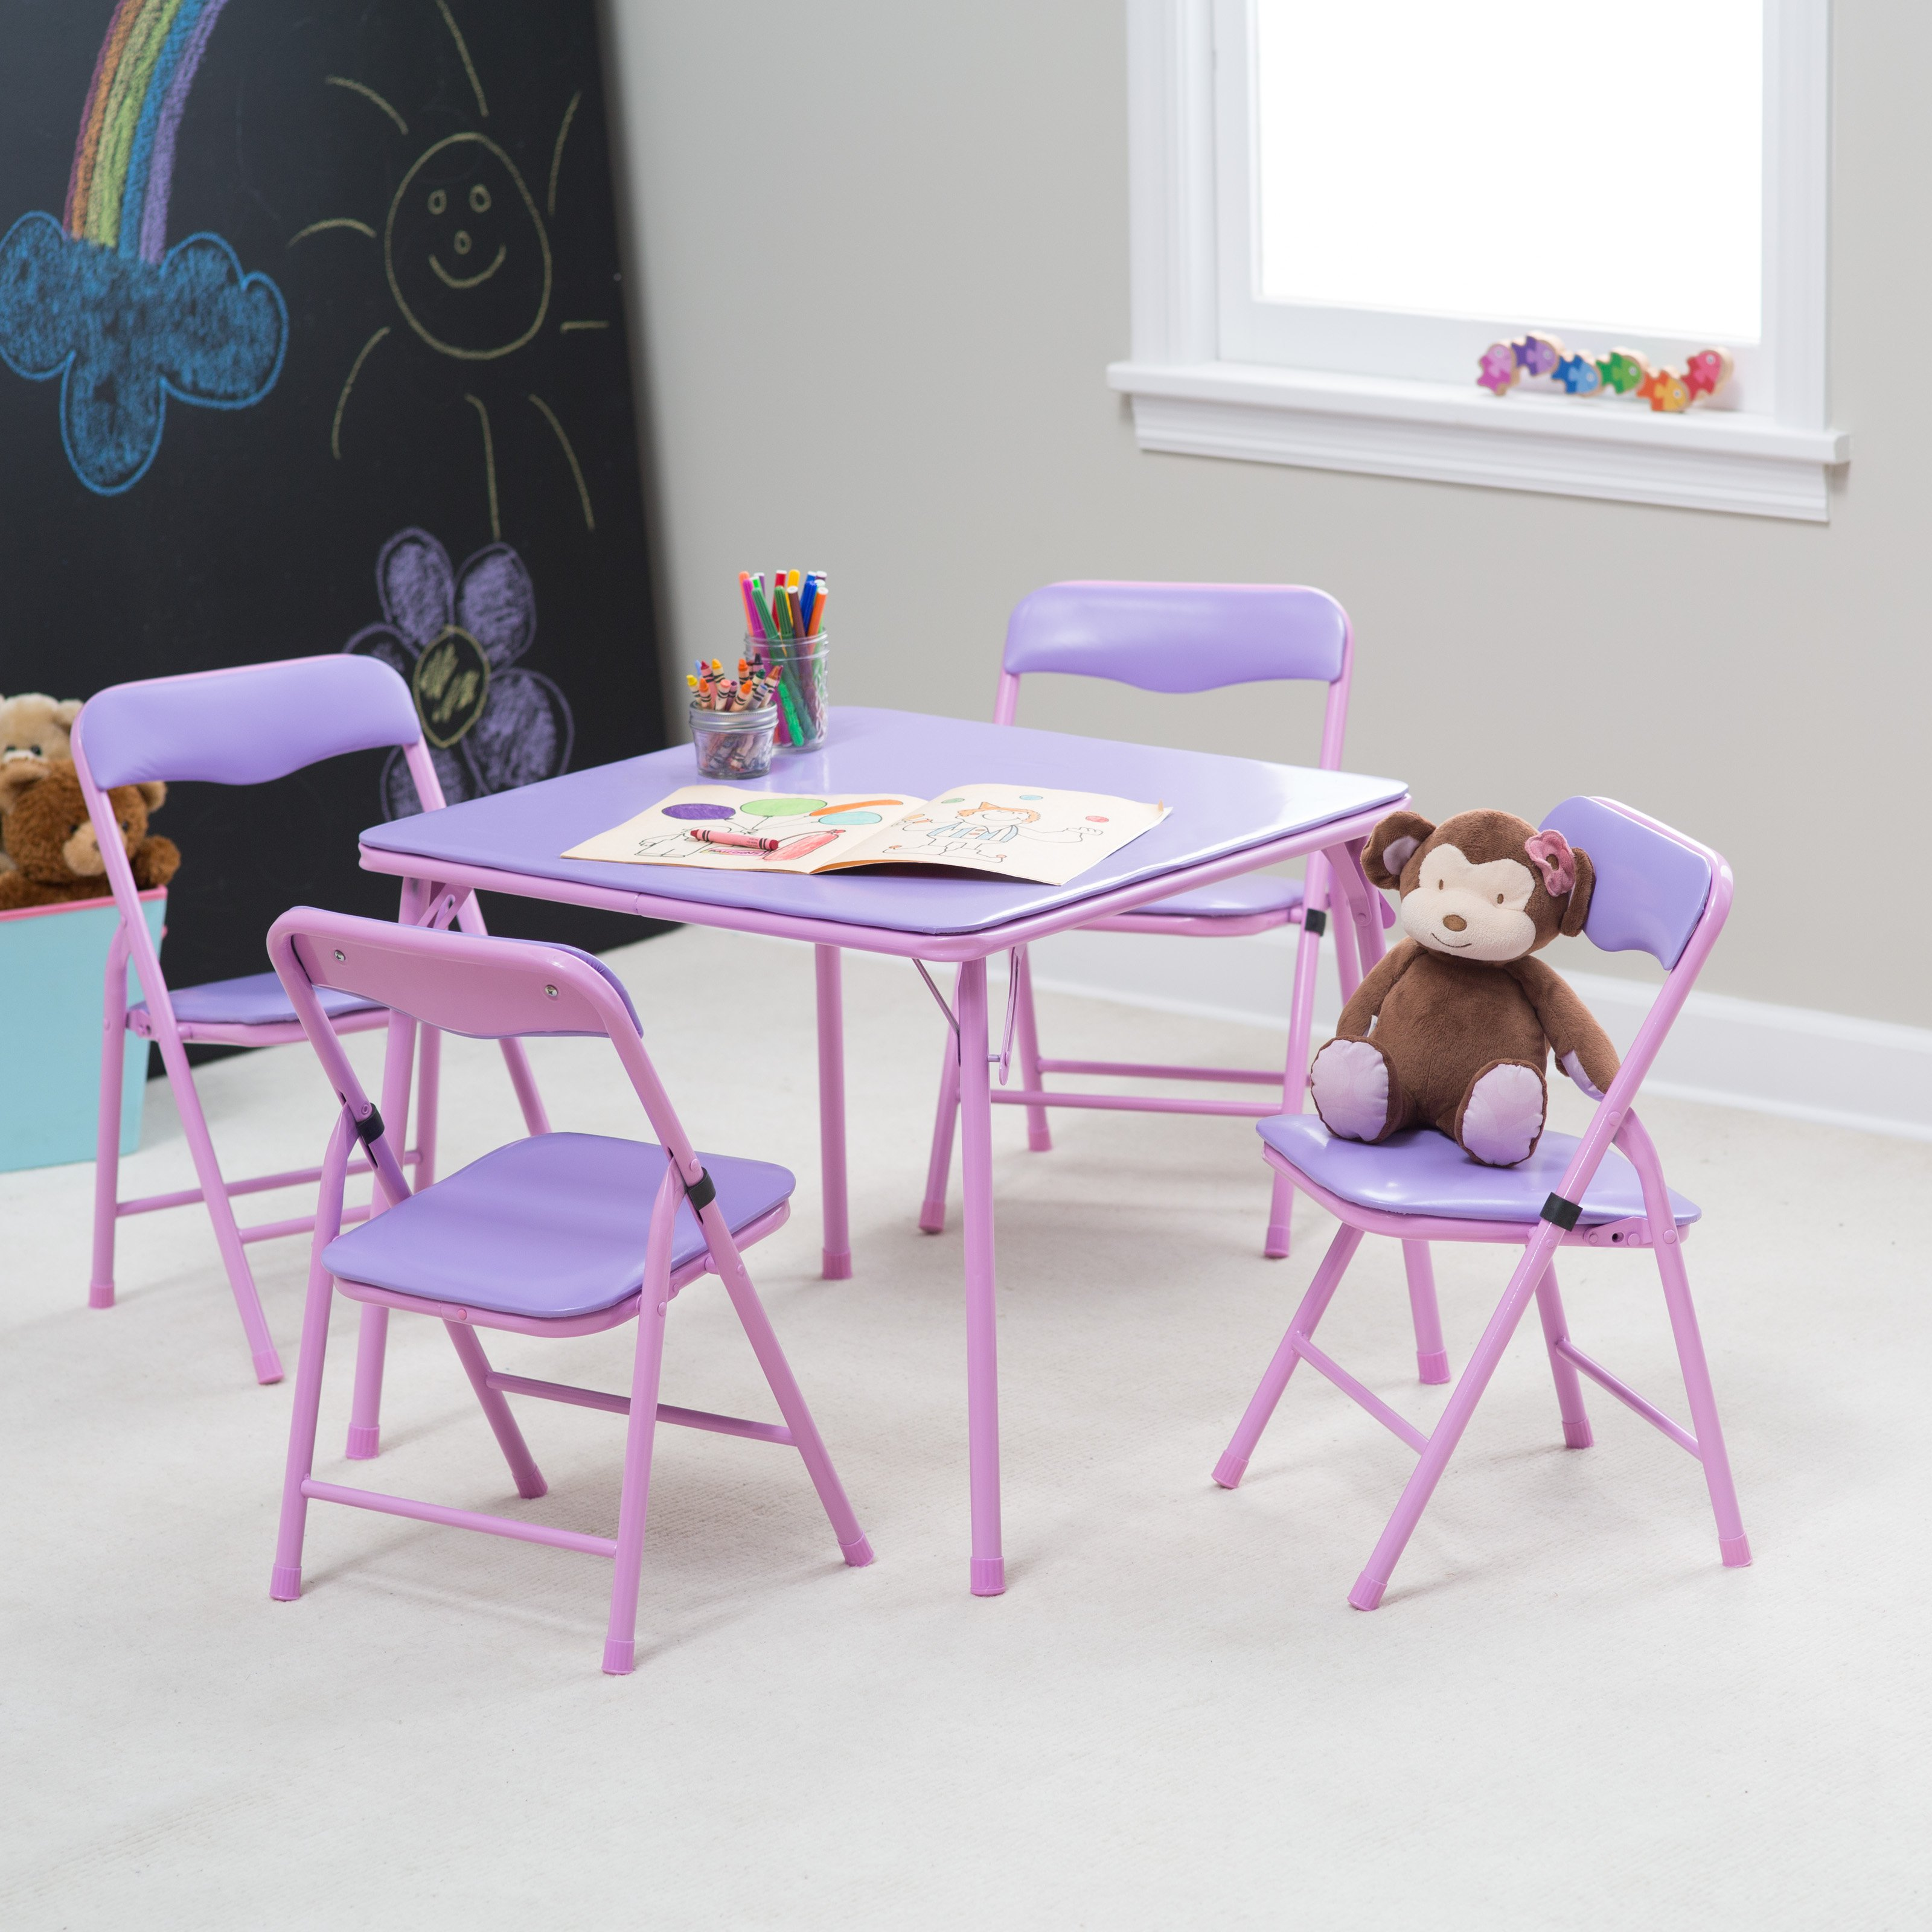 Luxury folding chairs and tables showtime childrens folding table and chair set - multi-color   hayneedle pjzaynm